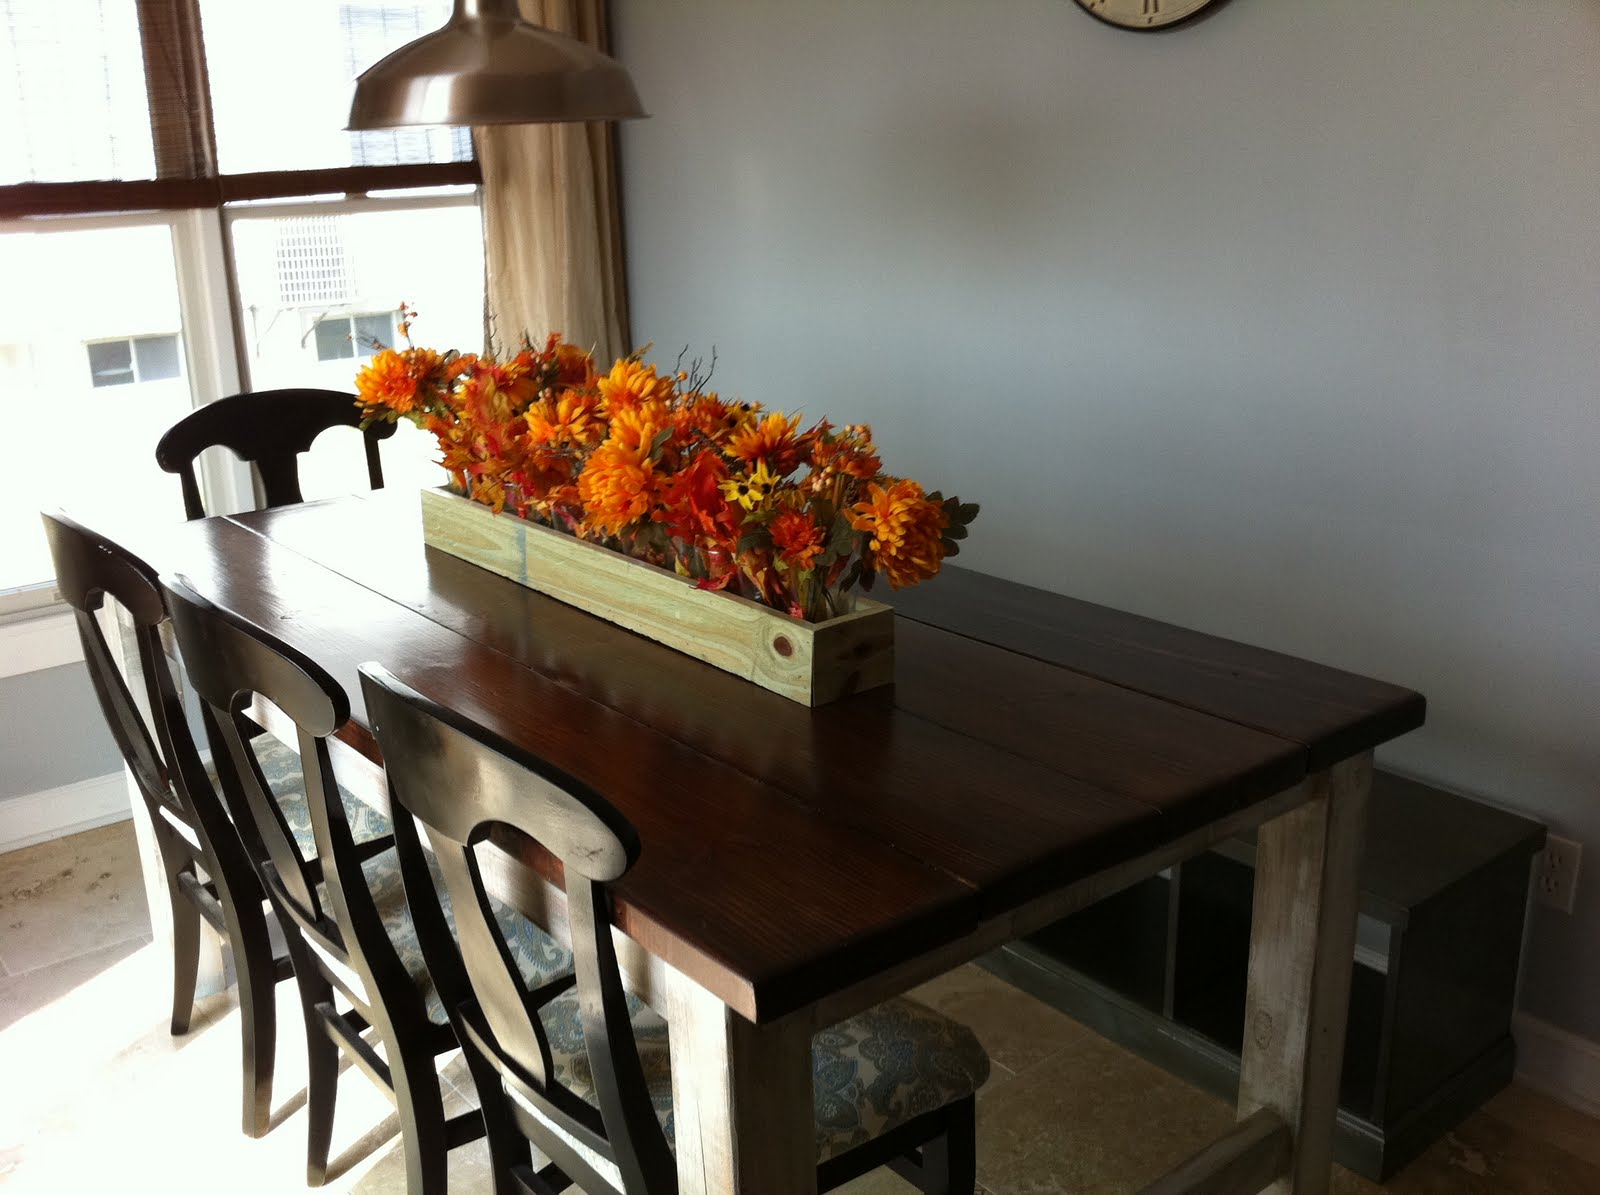 reclaimed wood kitchen table ottawa best kitchen ideas diy kitchen table plans Wood Kitchen Table Plans Free Rustic Natural Wood Dining Tables